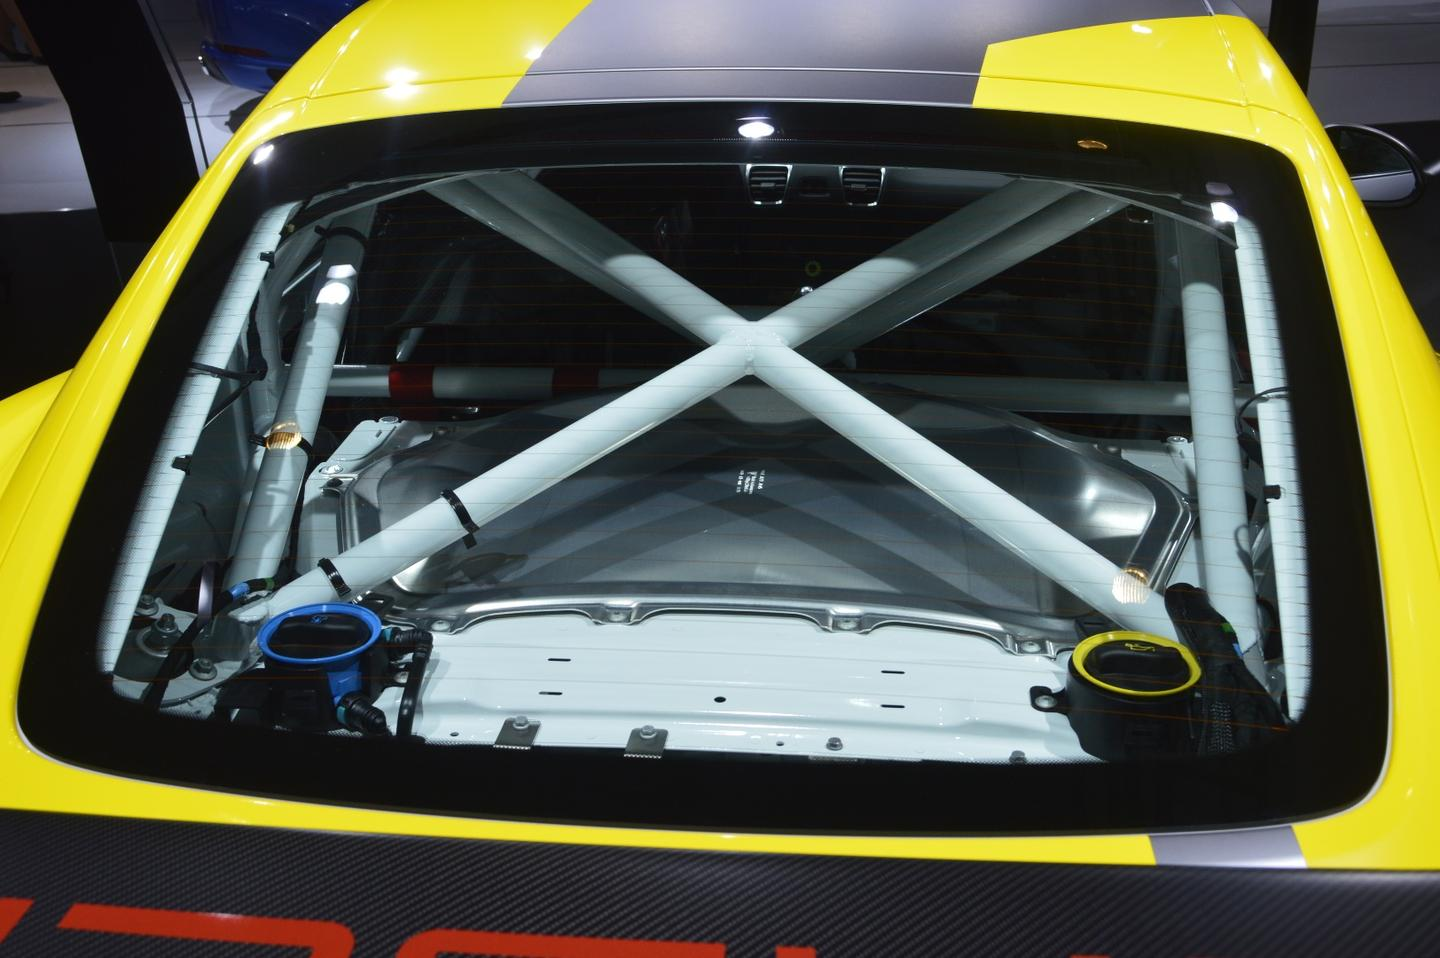 A welded-in safety cage, racing bucket for the driver, and a six-point harness are now standard equipment here